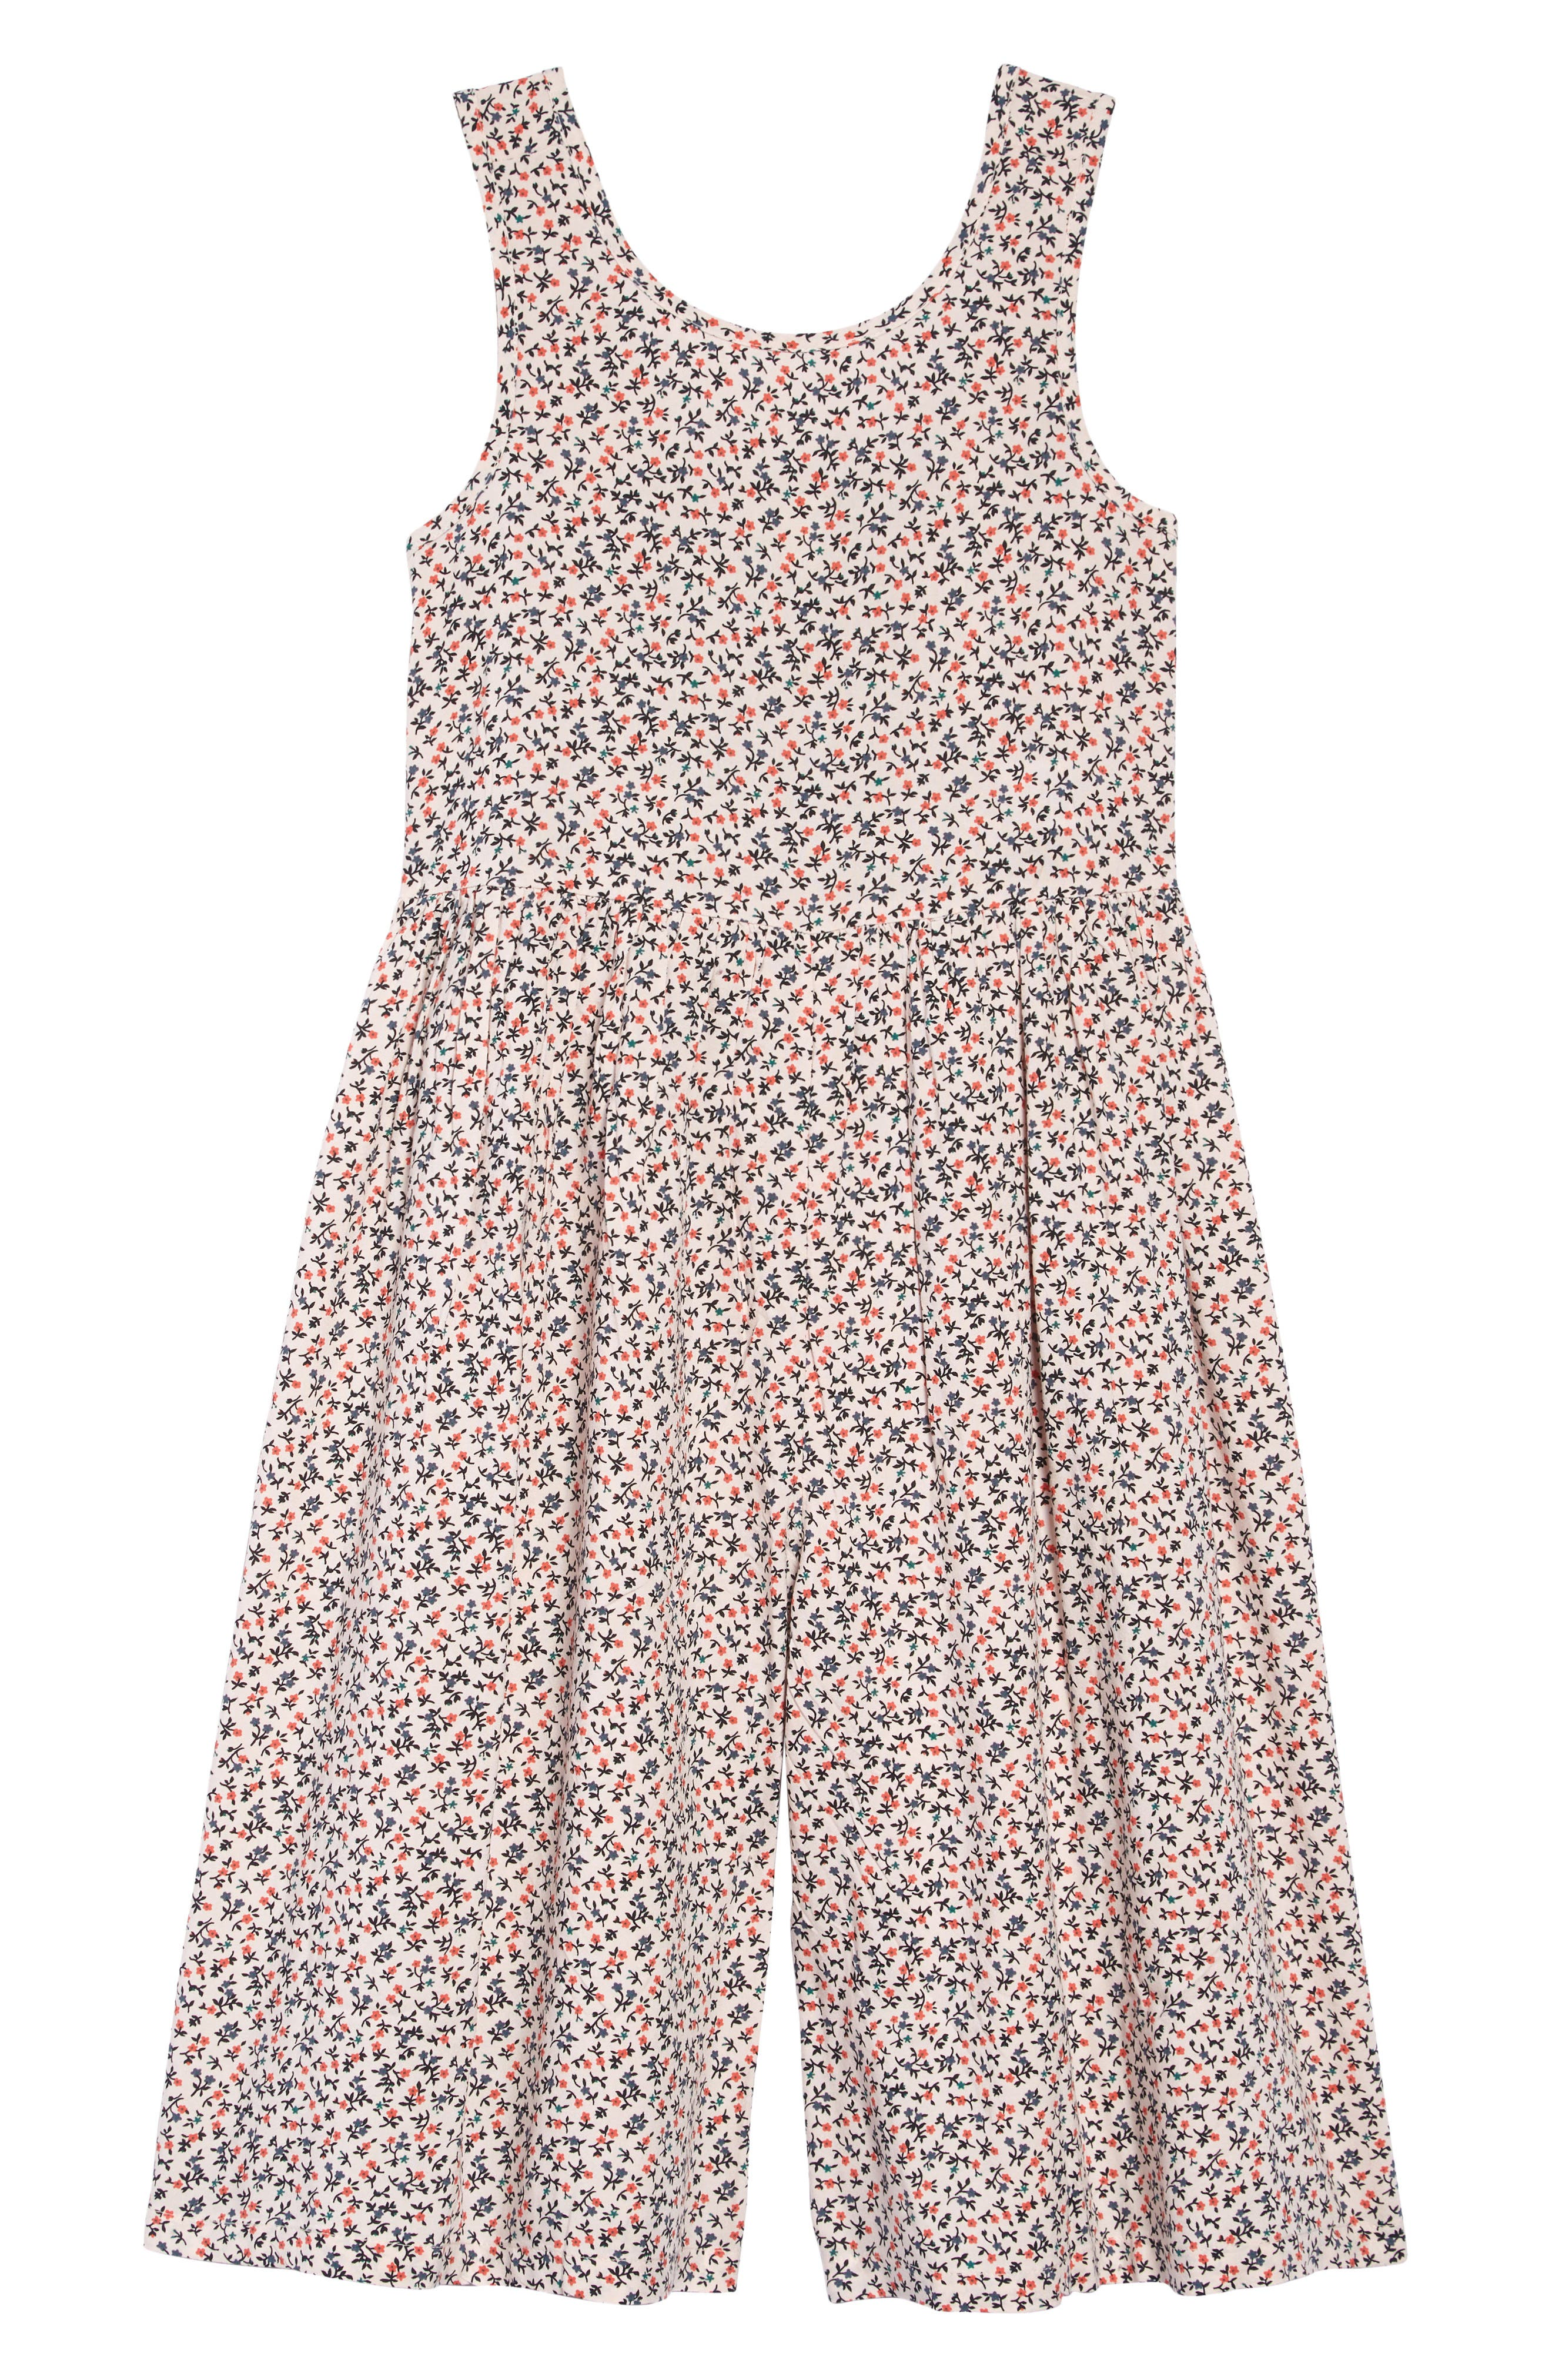 TUCKER + TATE, Print Romper, Main thumbnail 1, color, PINK AMOUR SCATTERED DAISY